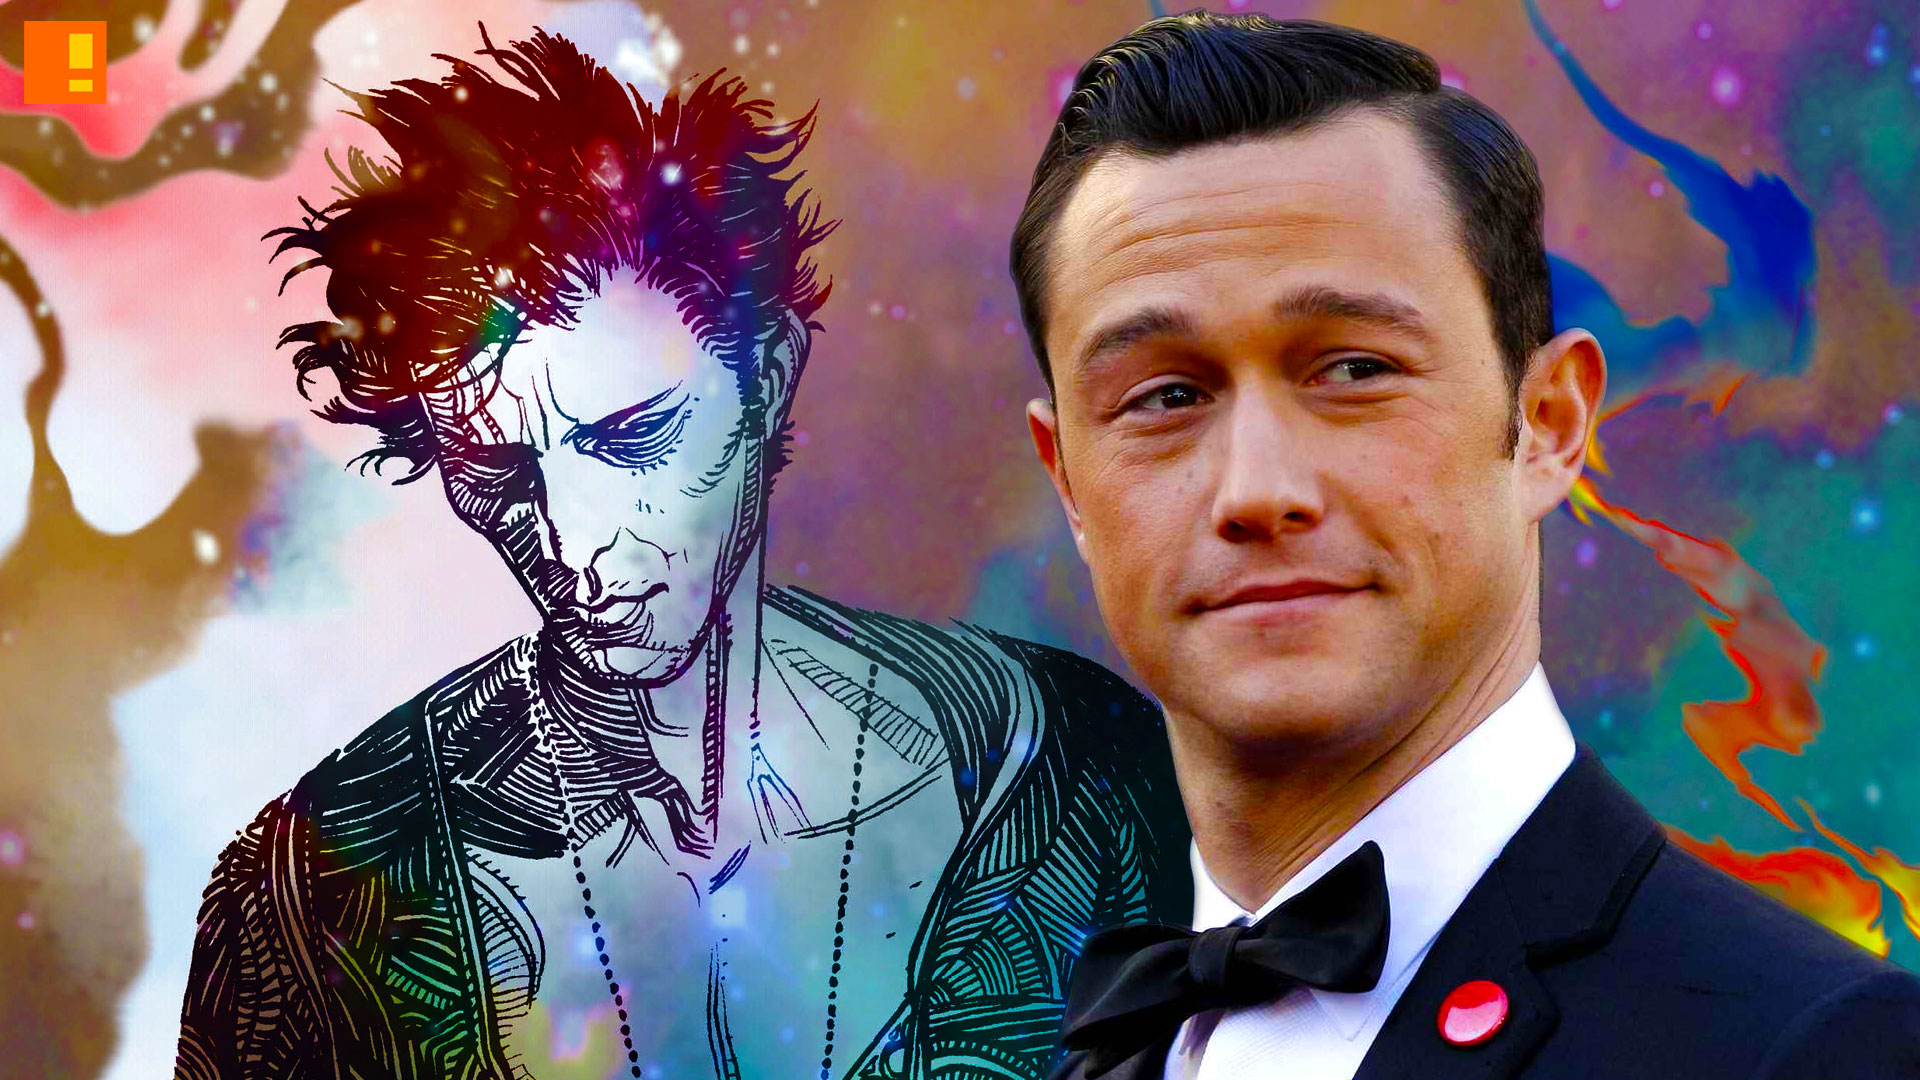 joseph gordon-levitt. dc vertigo. sandman. the action pixel. @theactionpixel